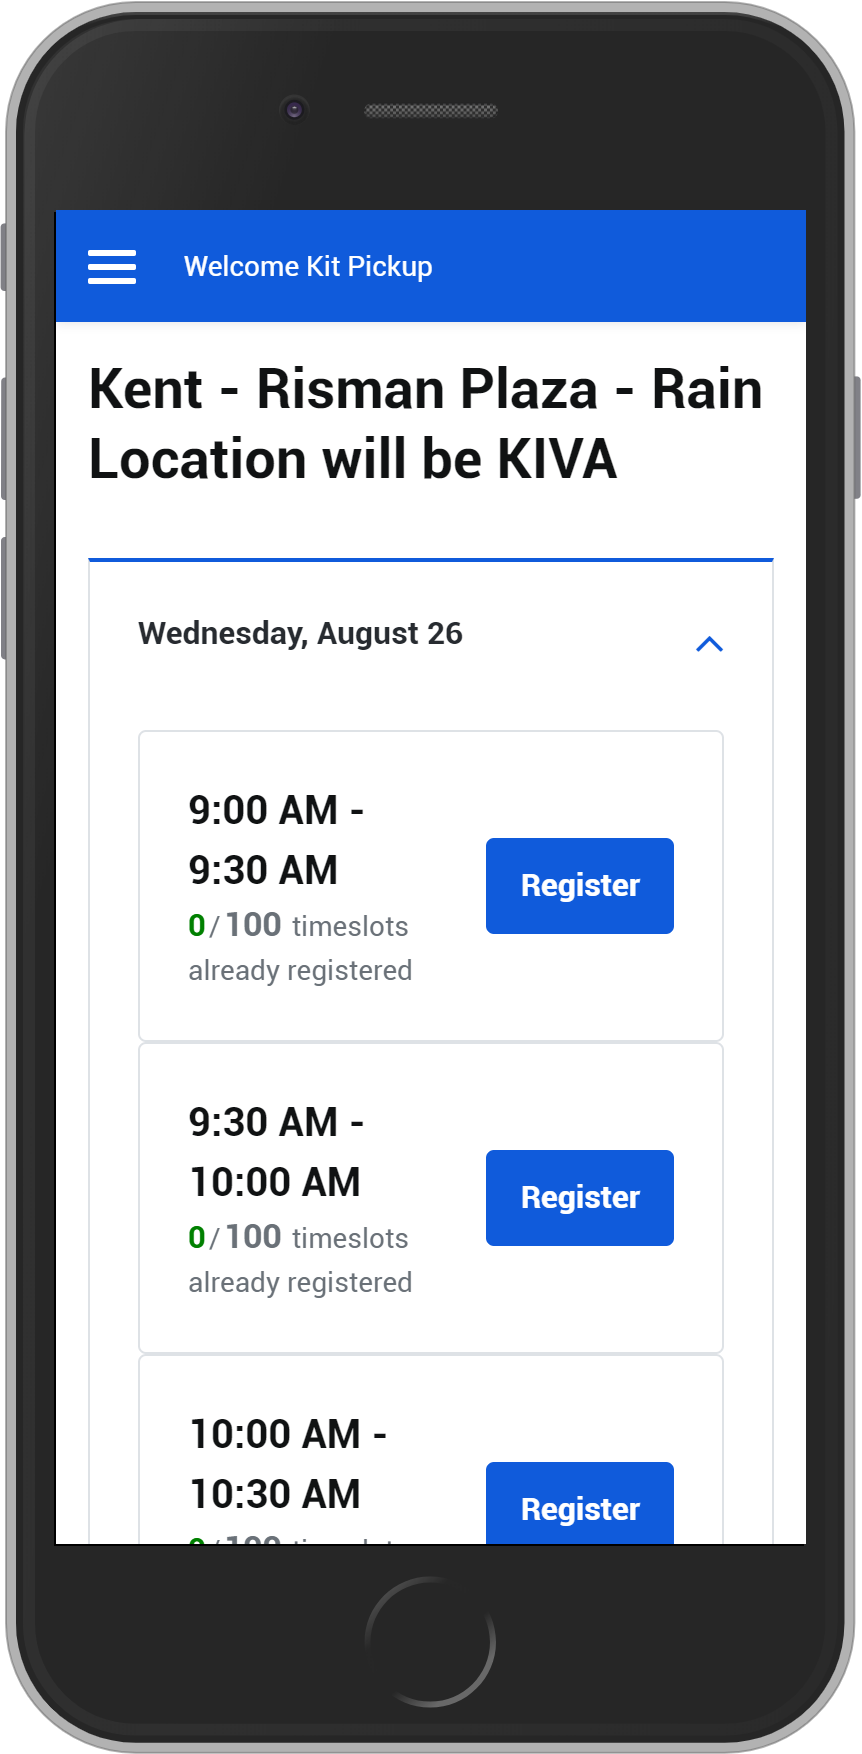 Screenshot of location and time selection in the Welcome Kit Pickup app